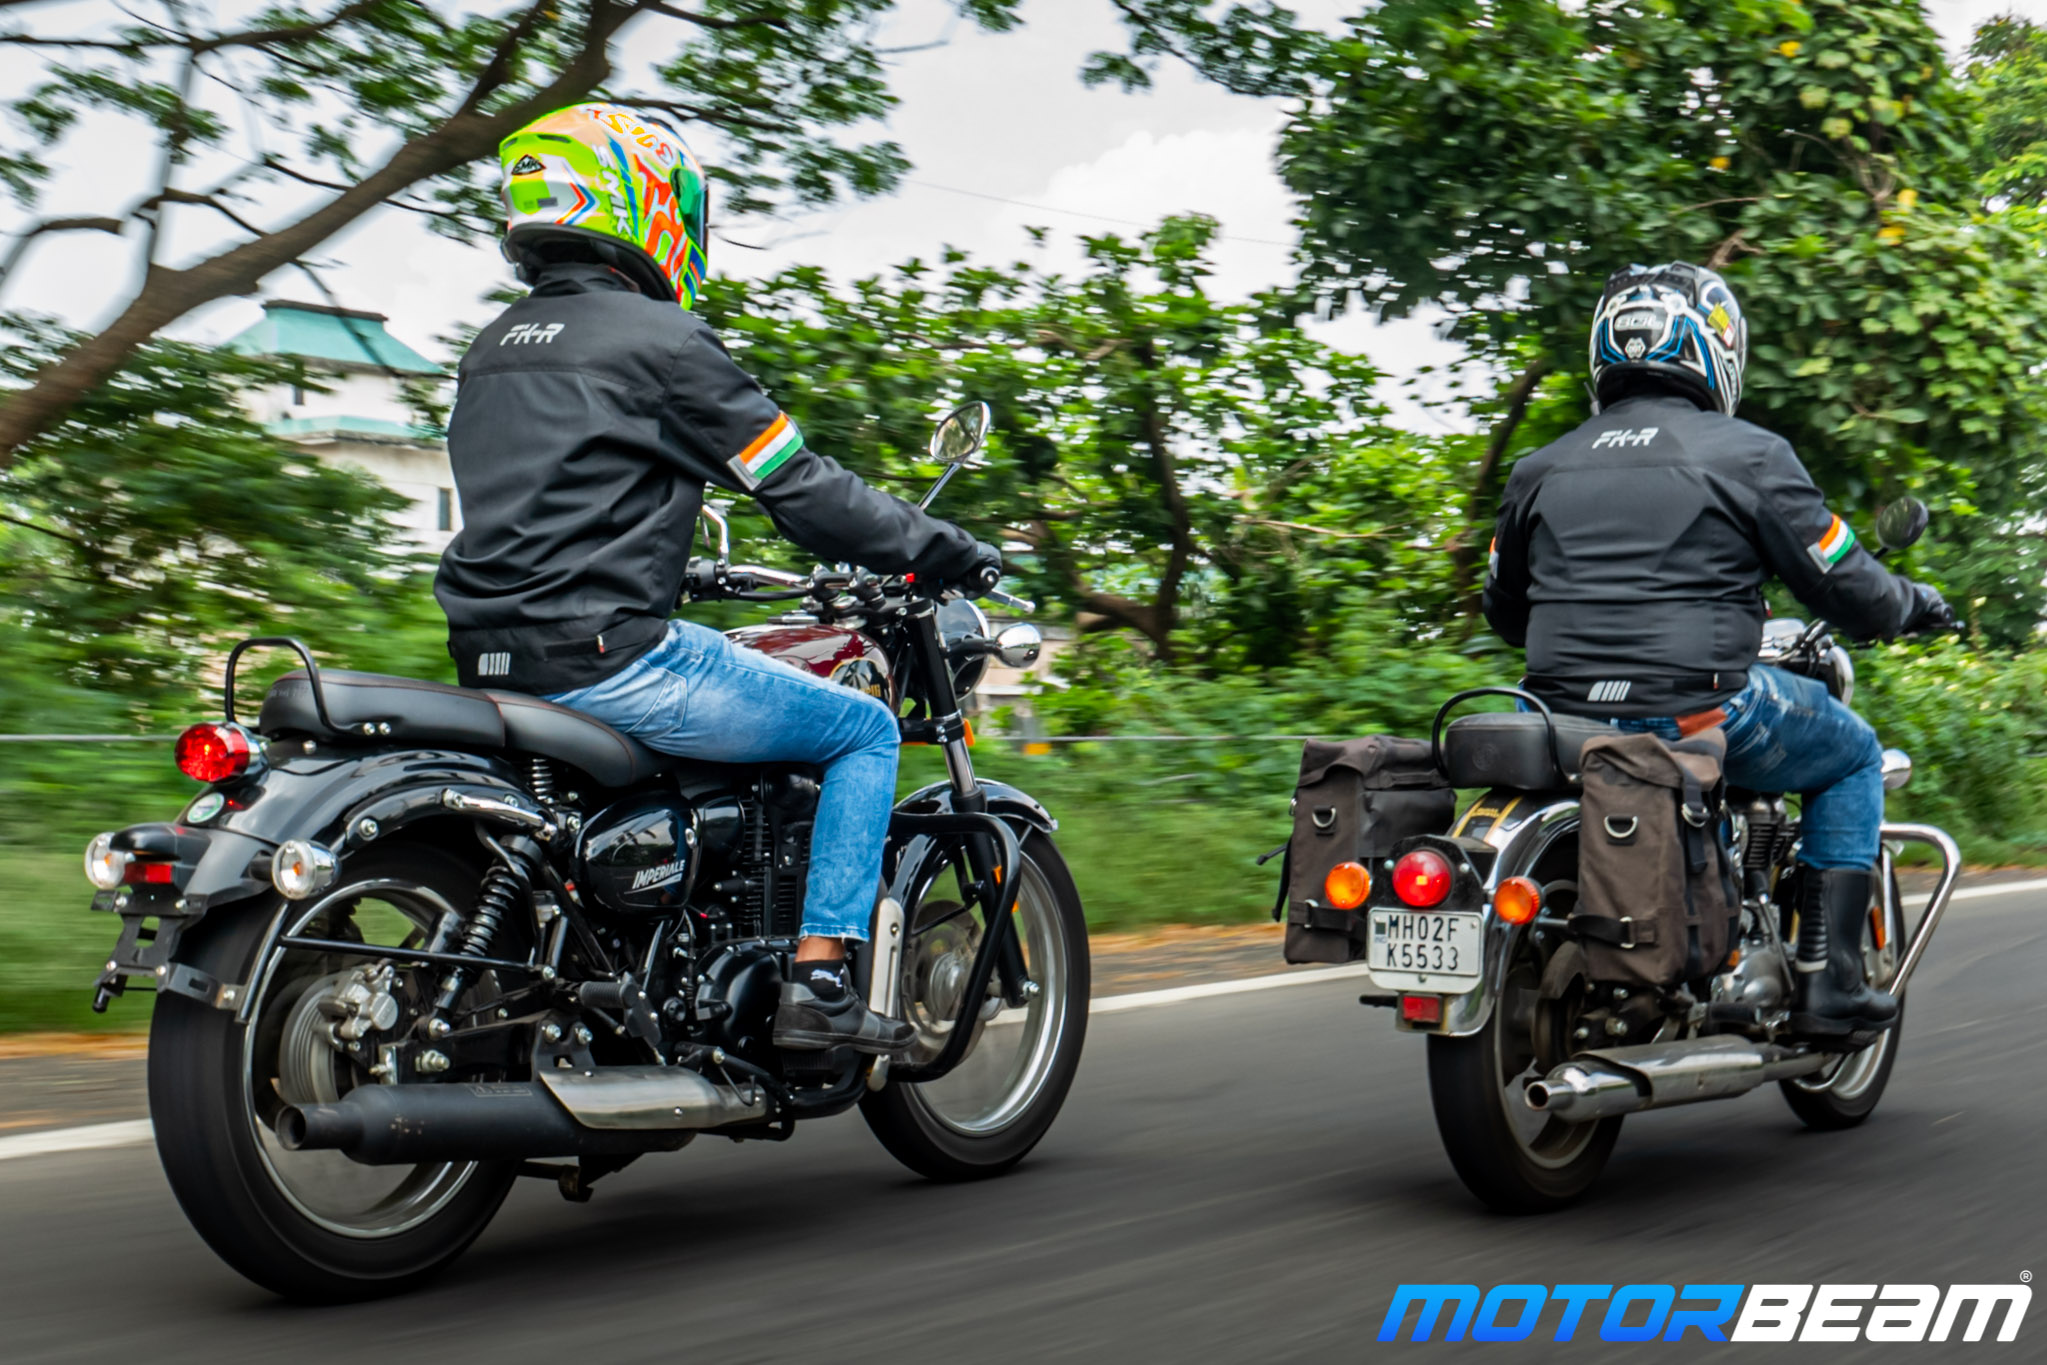 Benelli Imperiale 400 vs Royal Enfield Classic 350 Comparison Review 1